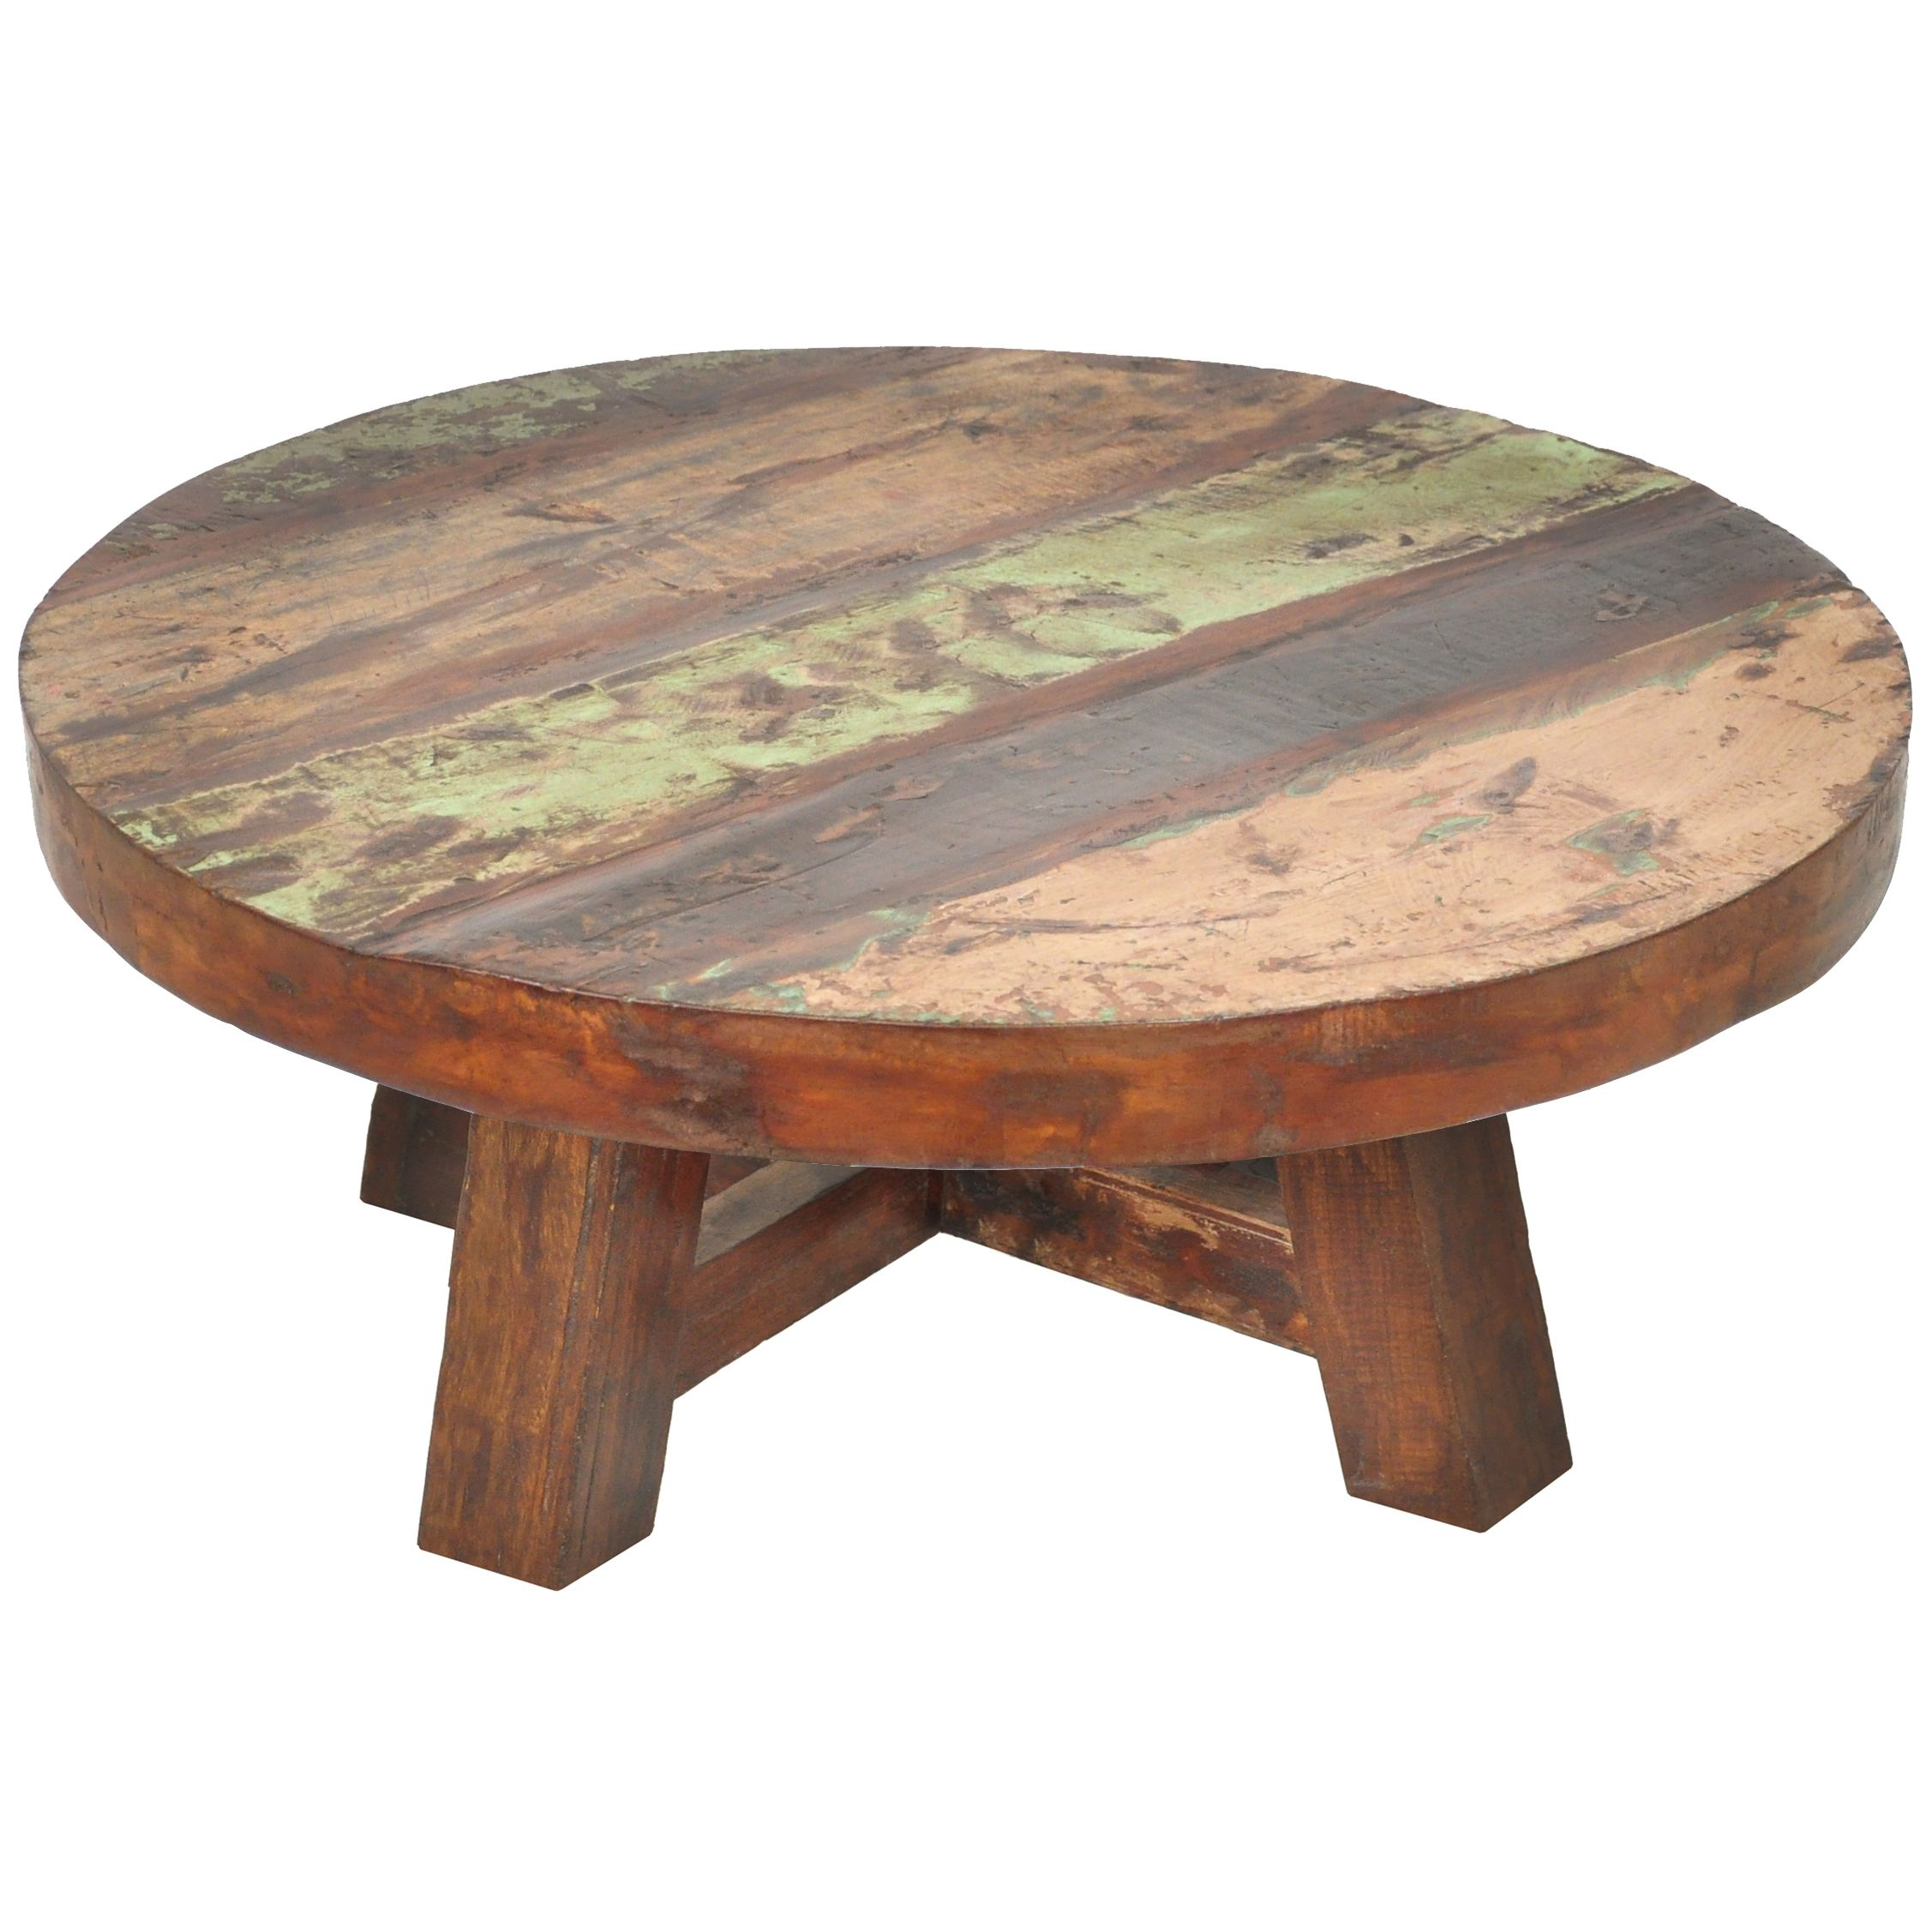 Small Round Cherry Wood Coffee Table